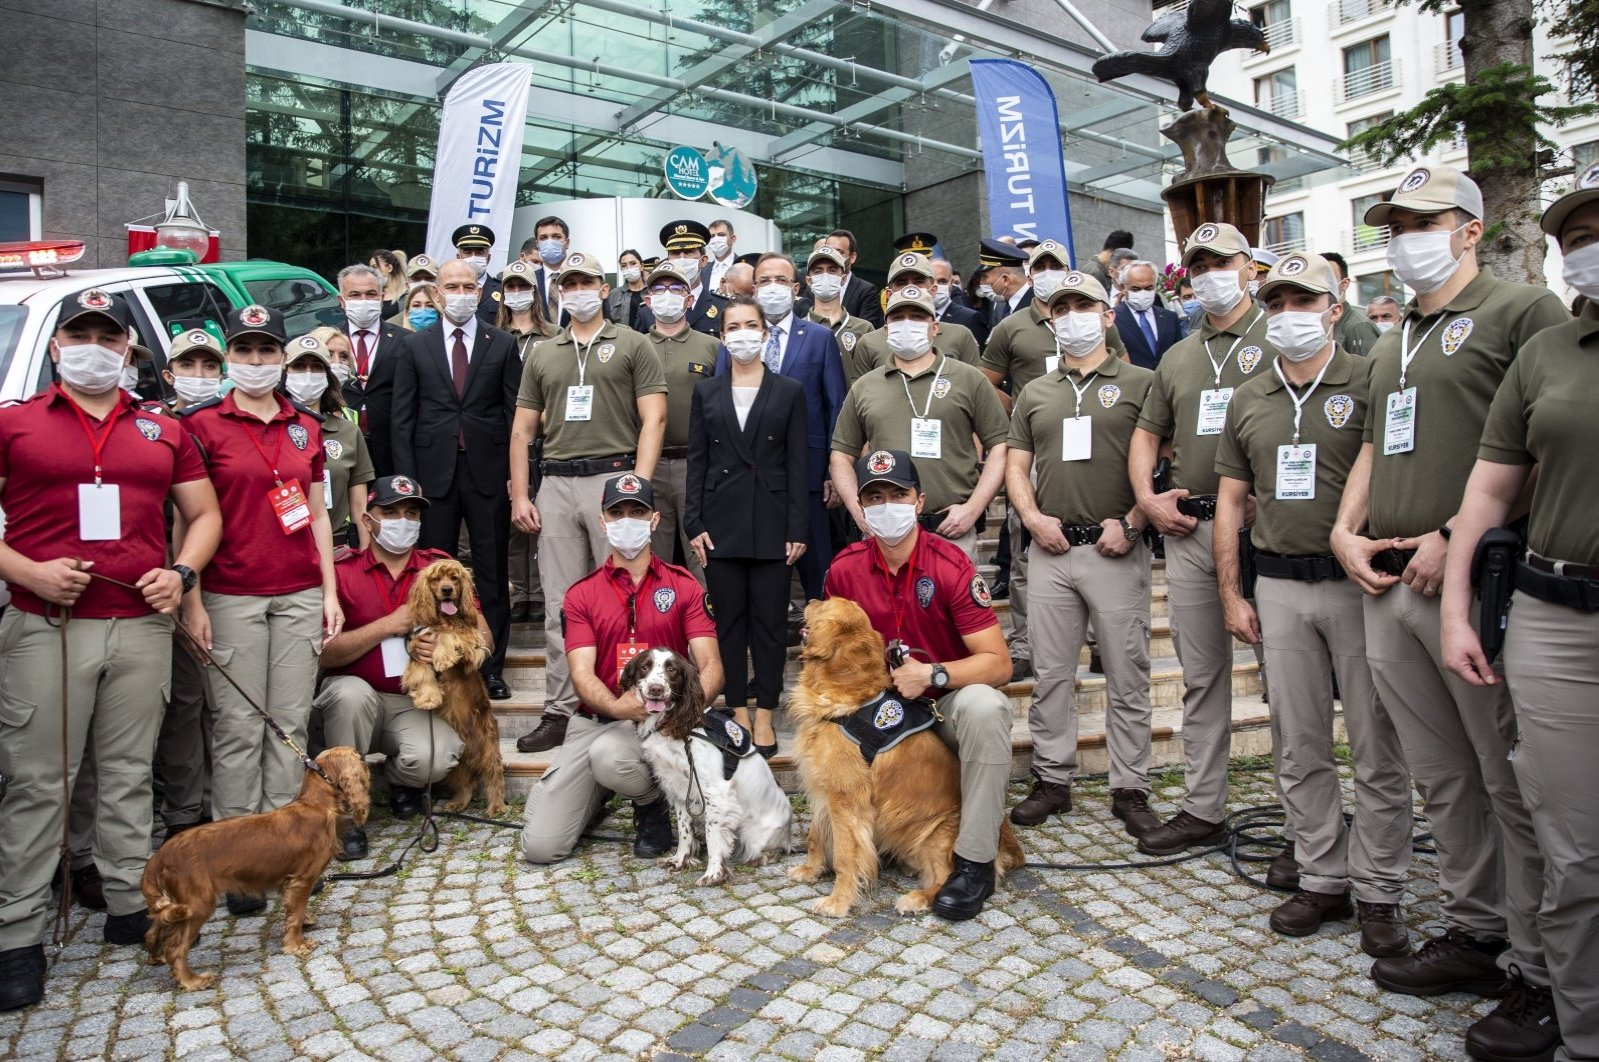 Trainees of the nature and animal police pose with Interior Minister Süleyman Soylu, in Ankara, Turkey, July 8, 2020. (AA Photo)